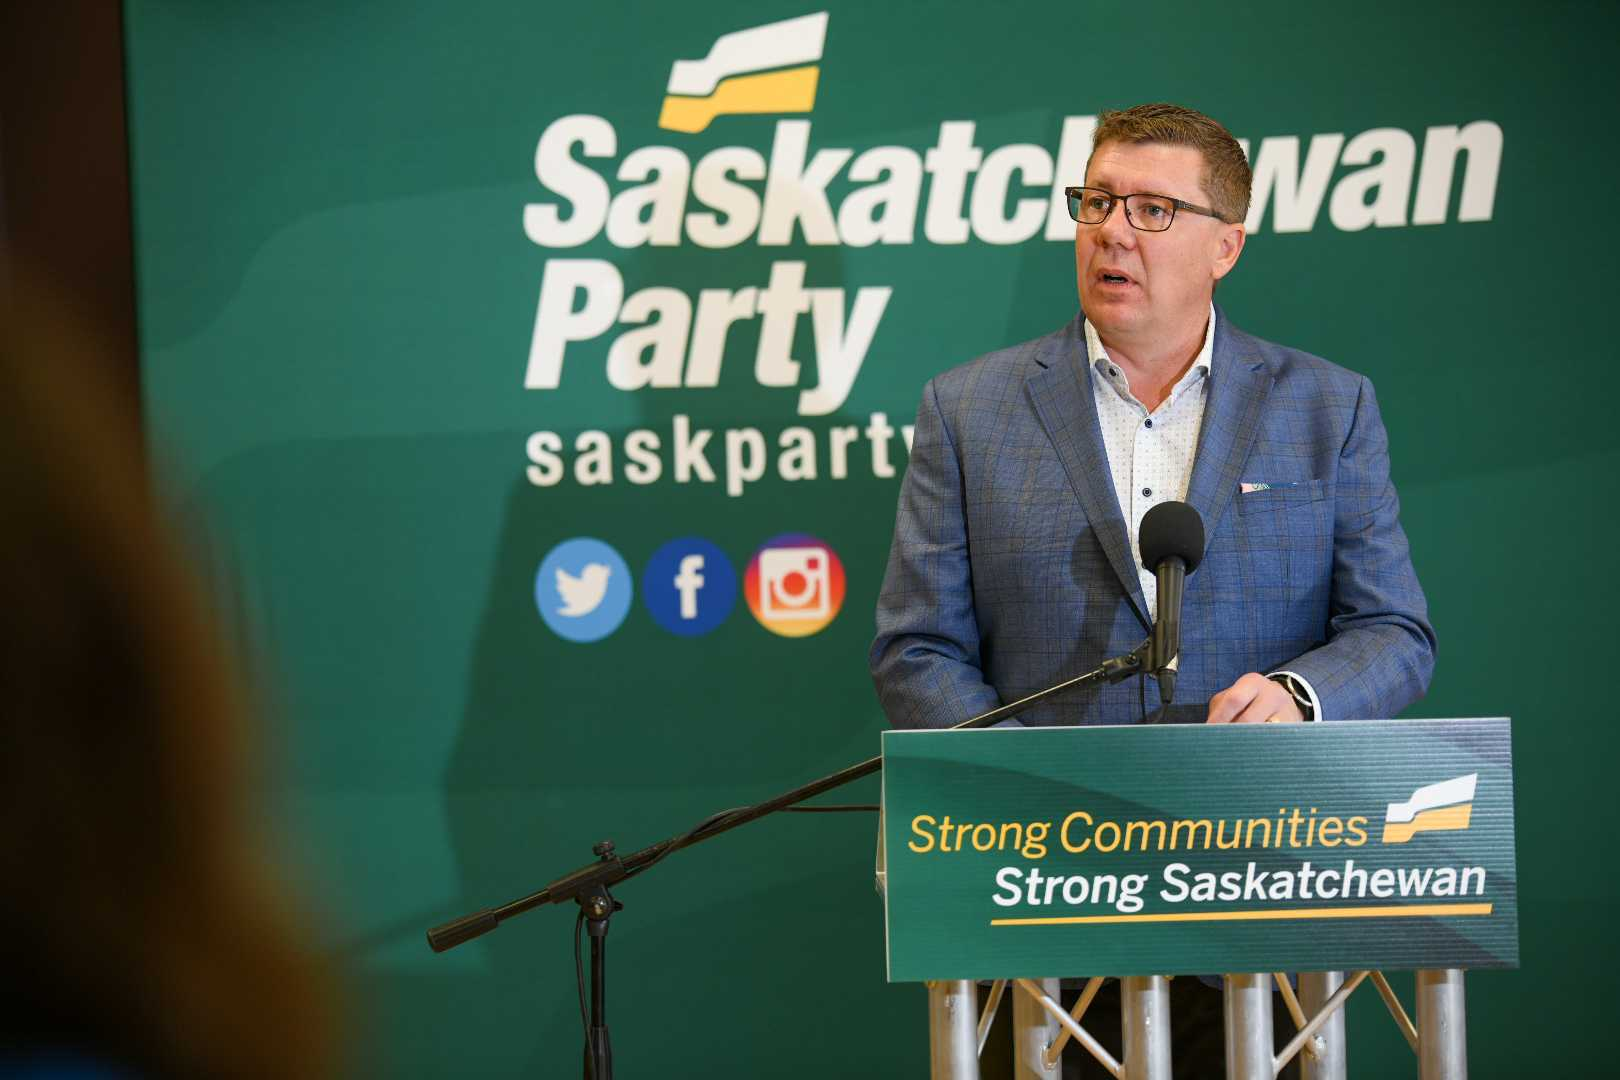 Saskatchewan Party Will Reduce Ambulance Costs For Seniors, Increase Seniors Income Plan and Hire 300 New Continuing Care Aides